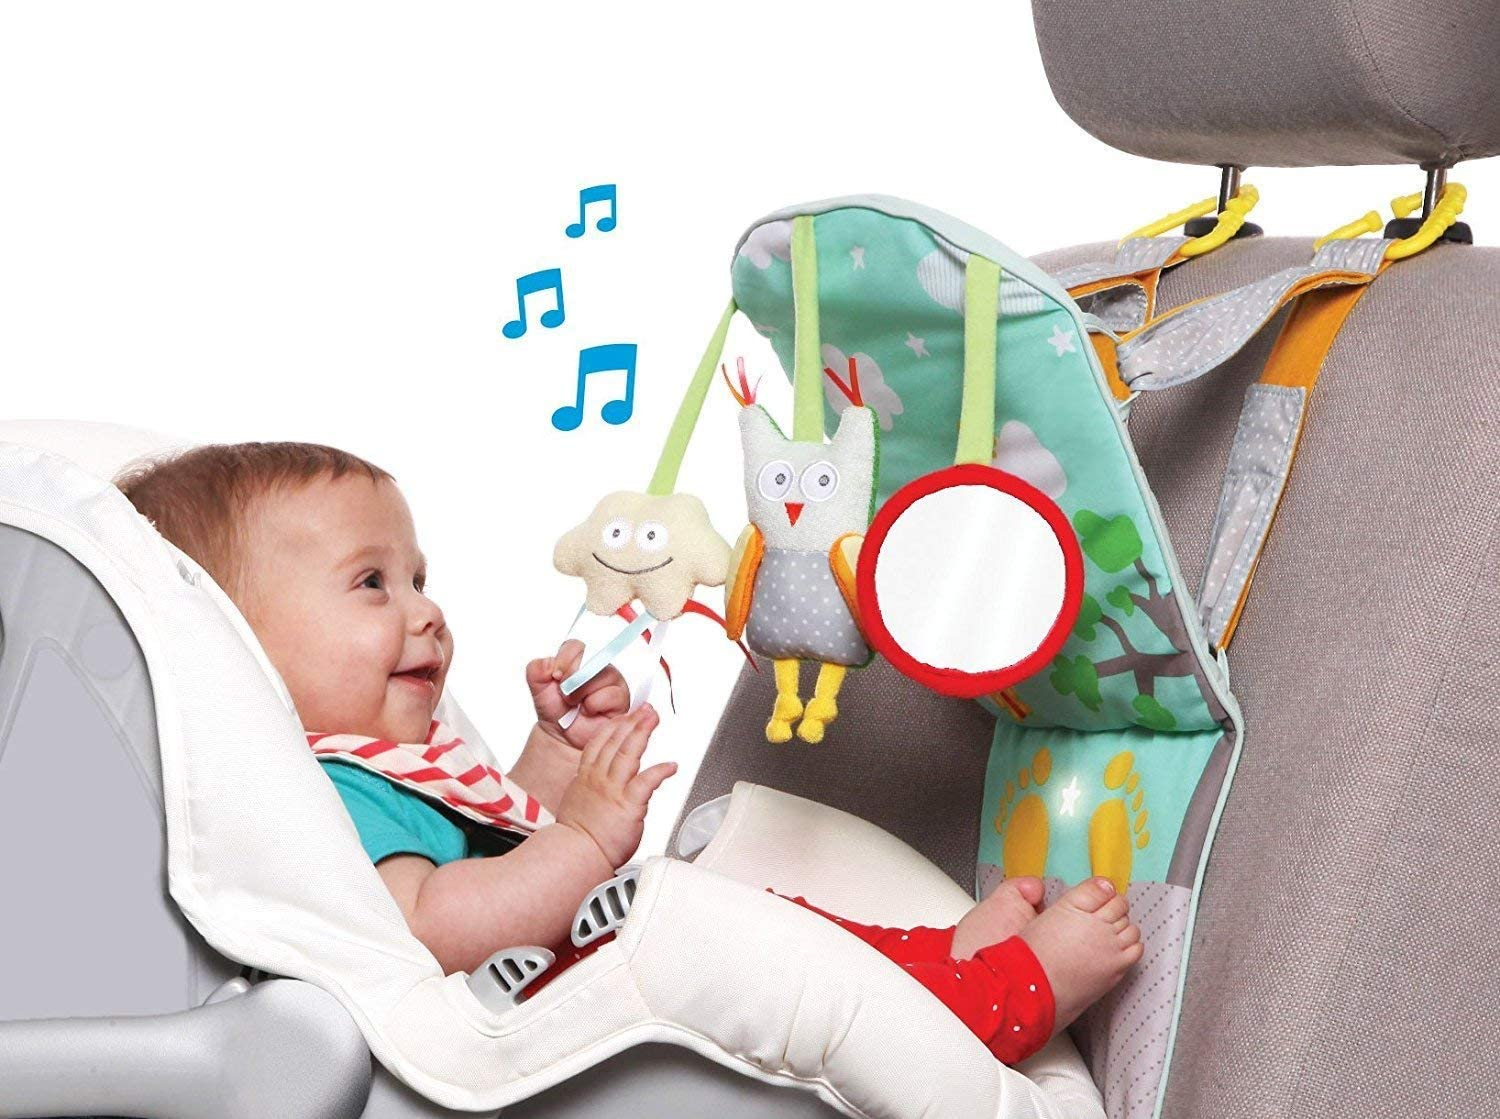 Taf Toys Baby//Kids Play /& Kick Car Toy│Travel Activity Centre│With Music+Lights